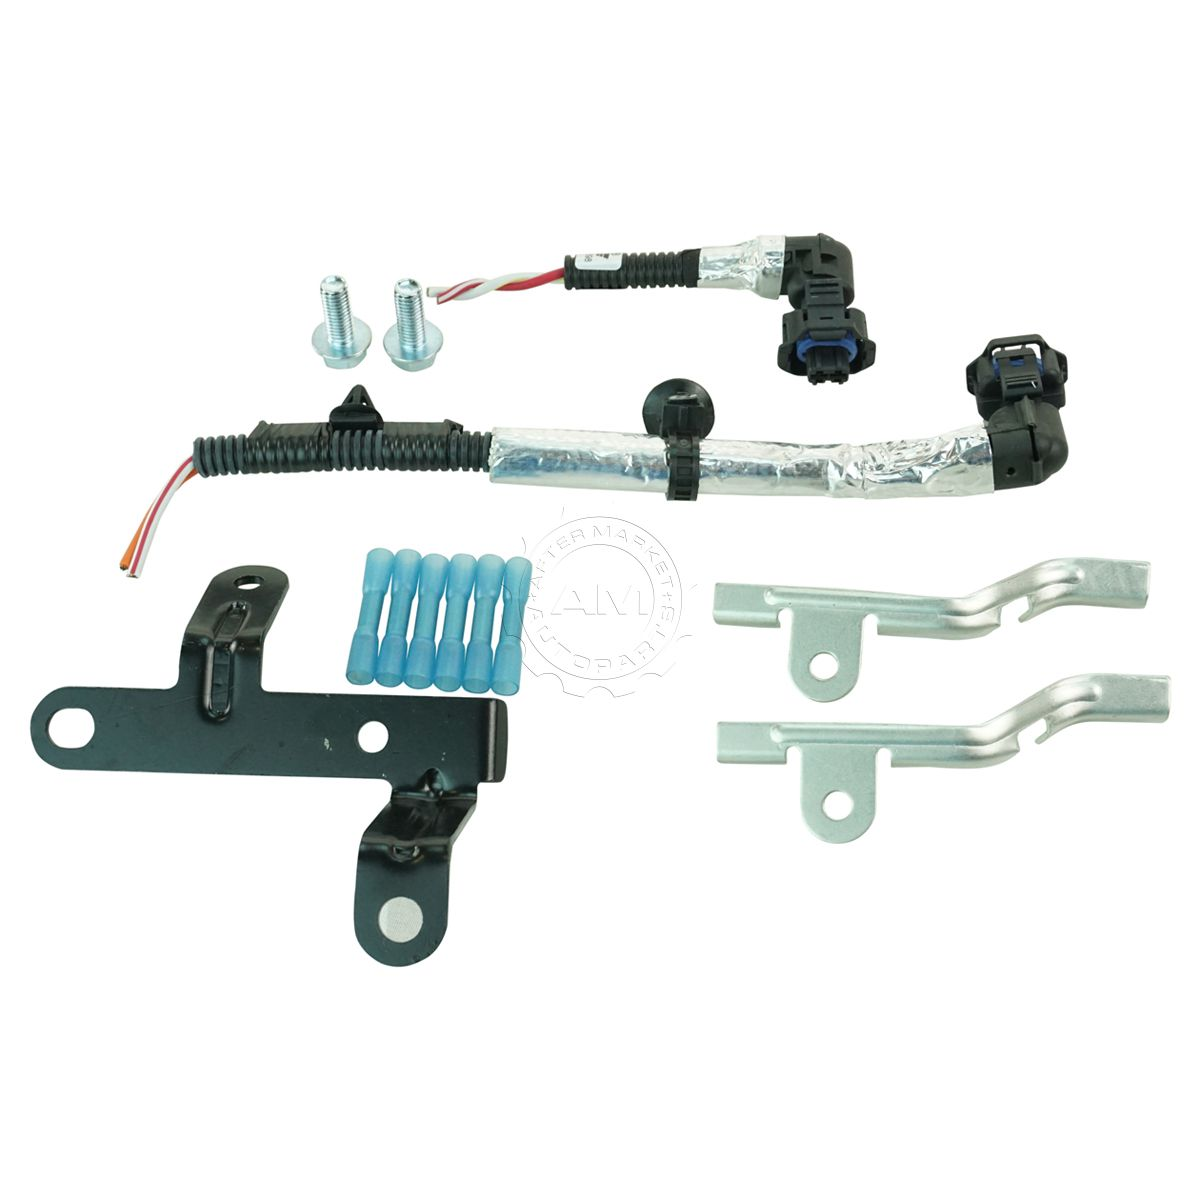 Dorman Fuel Injector Wiring Harness Repair Kit Updated Design for Duramax  Diesel